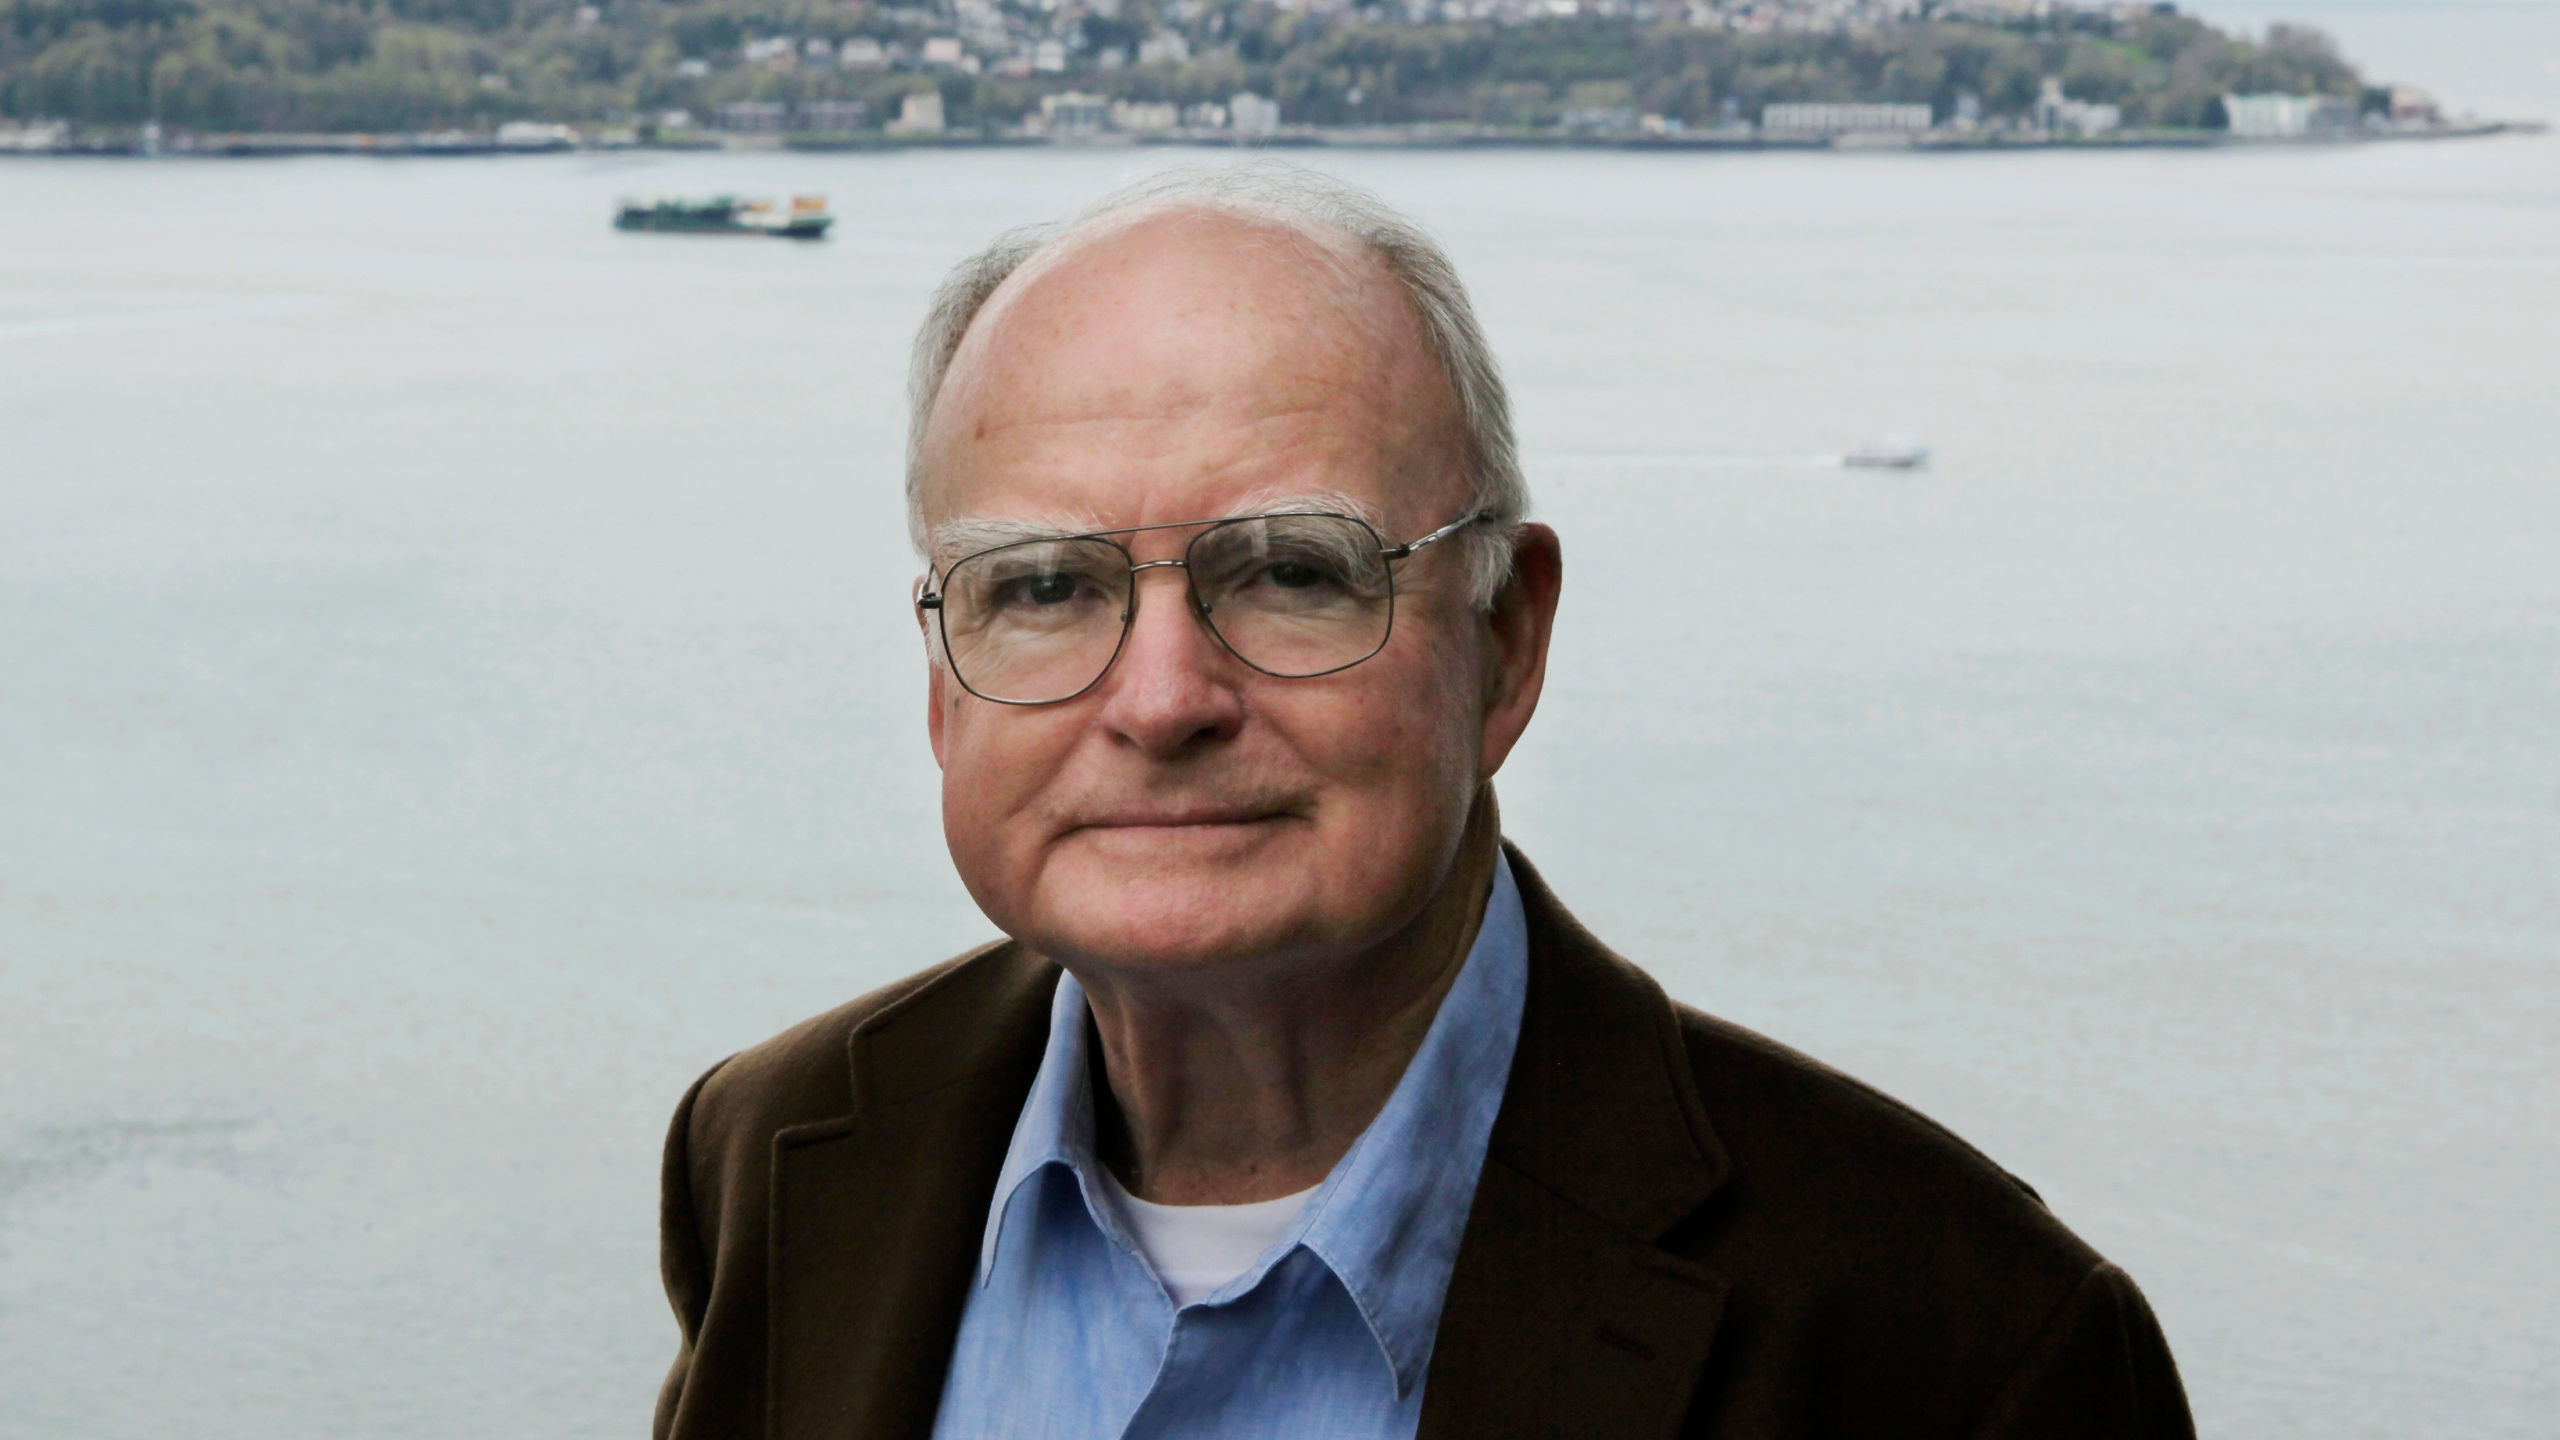 William Ruckelshaus